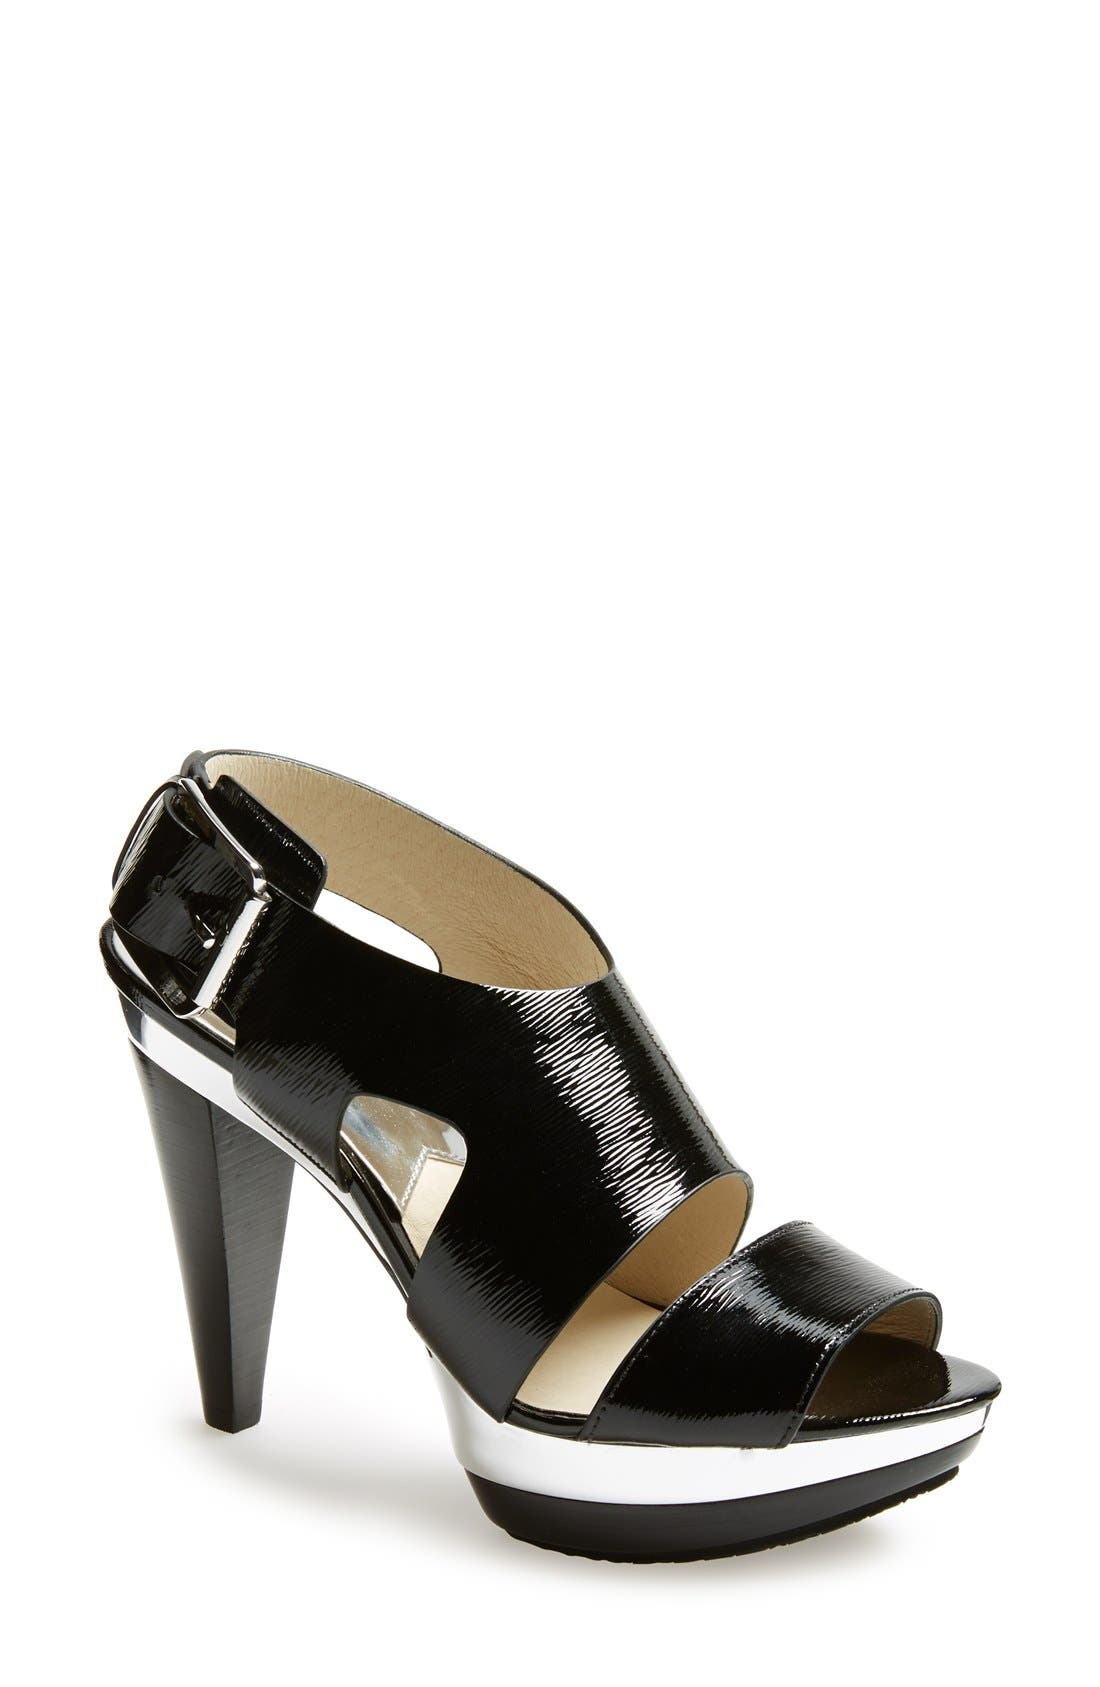 Alternate Image 1 Selected - MICHAEL Michael Kors 'Carla' Saffiano Patent Leather Sandal (Women)